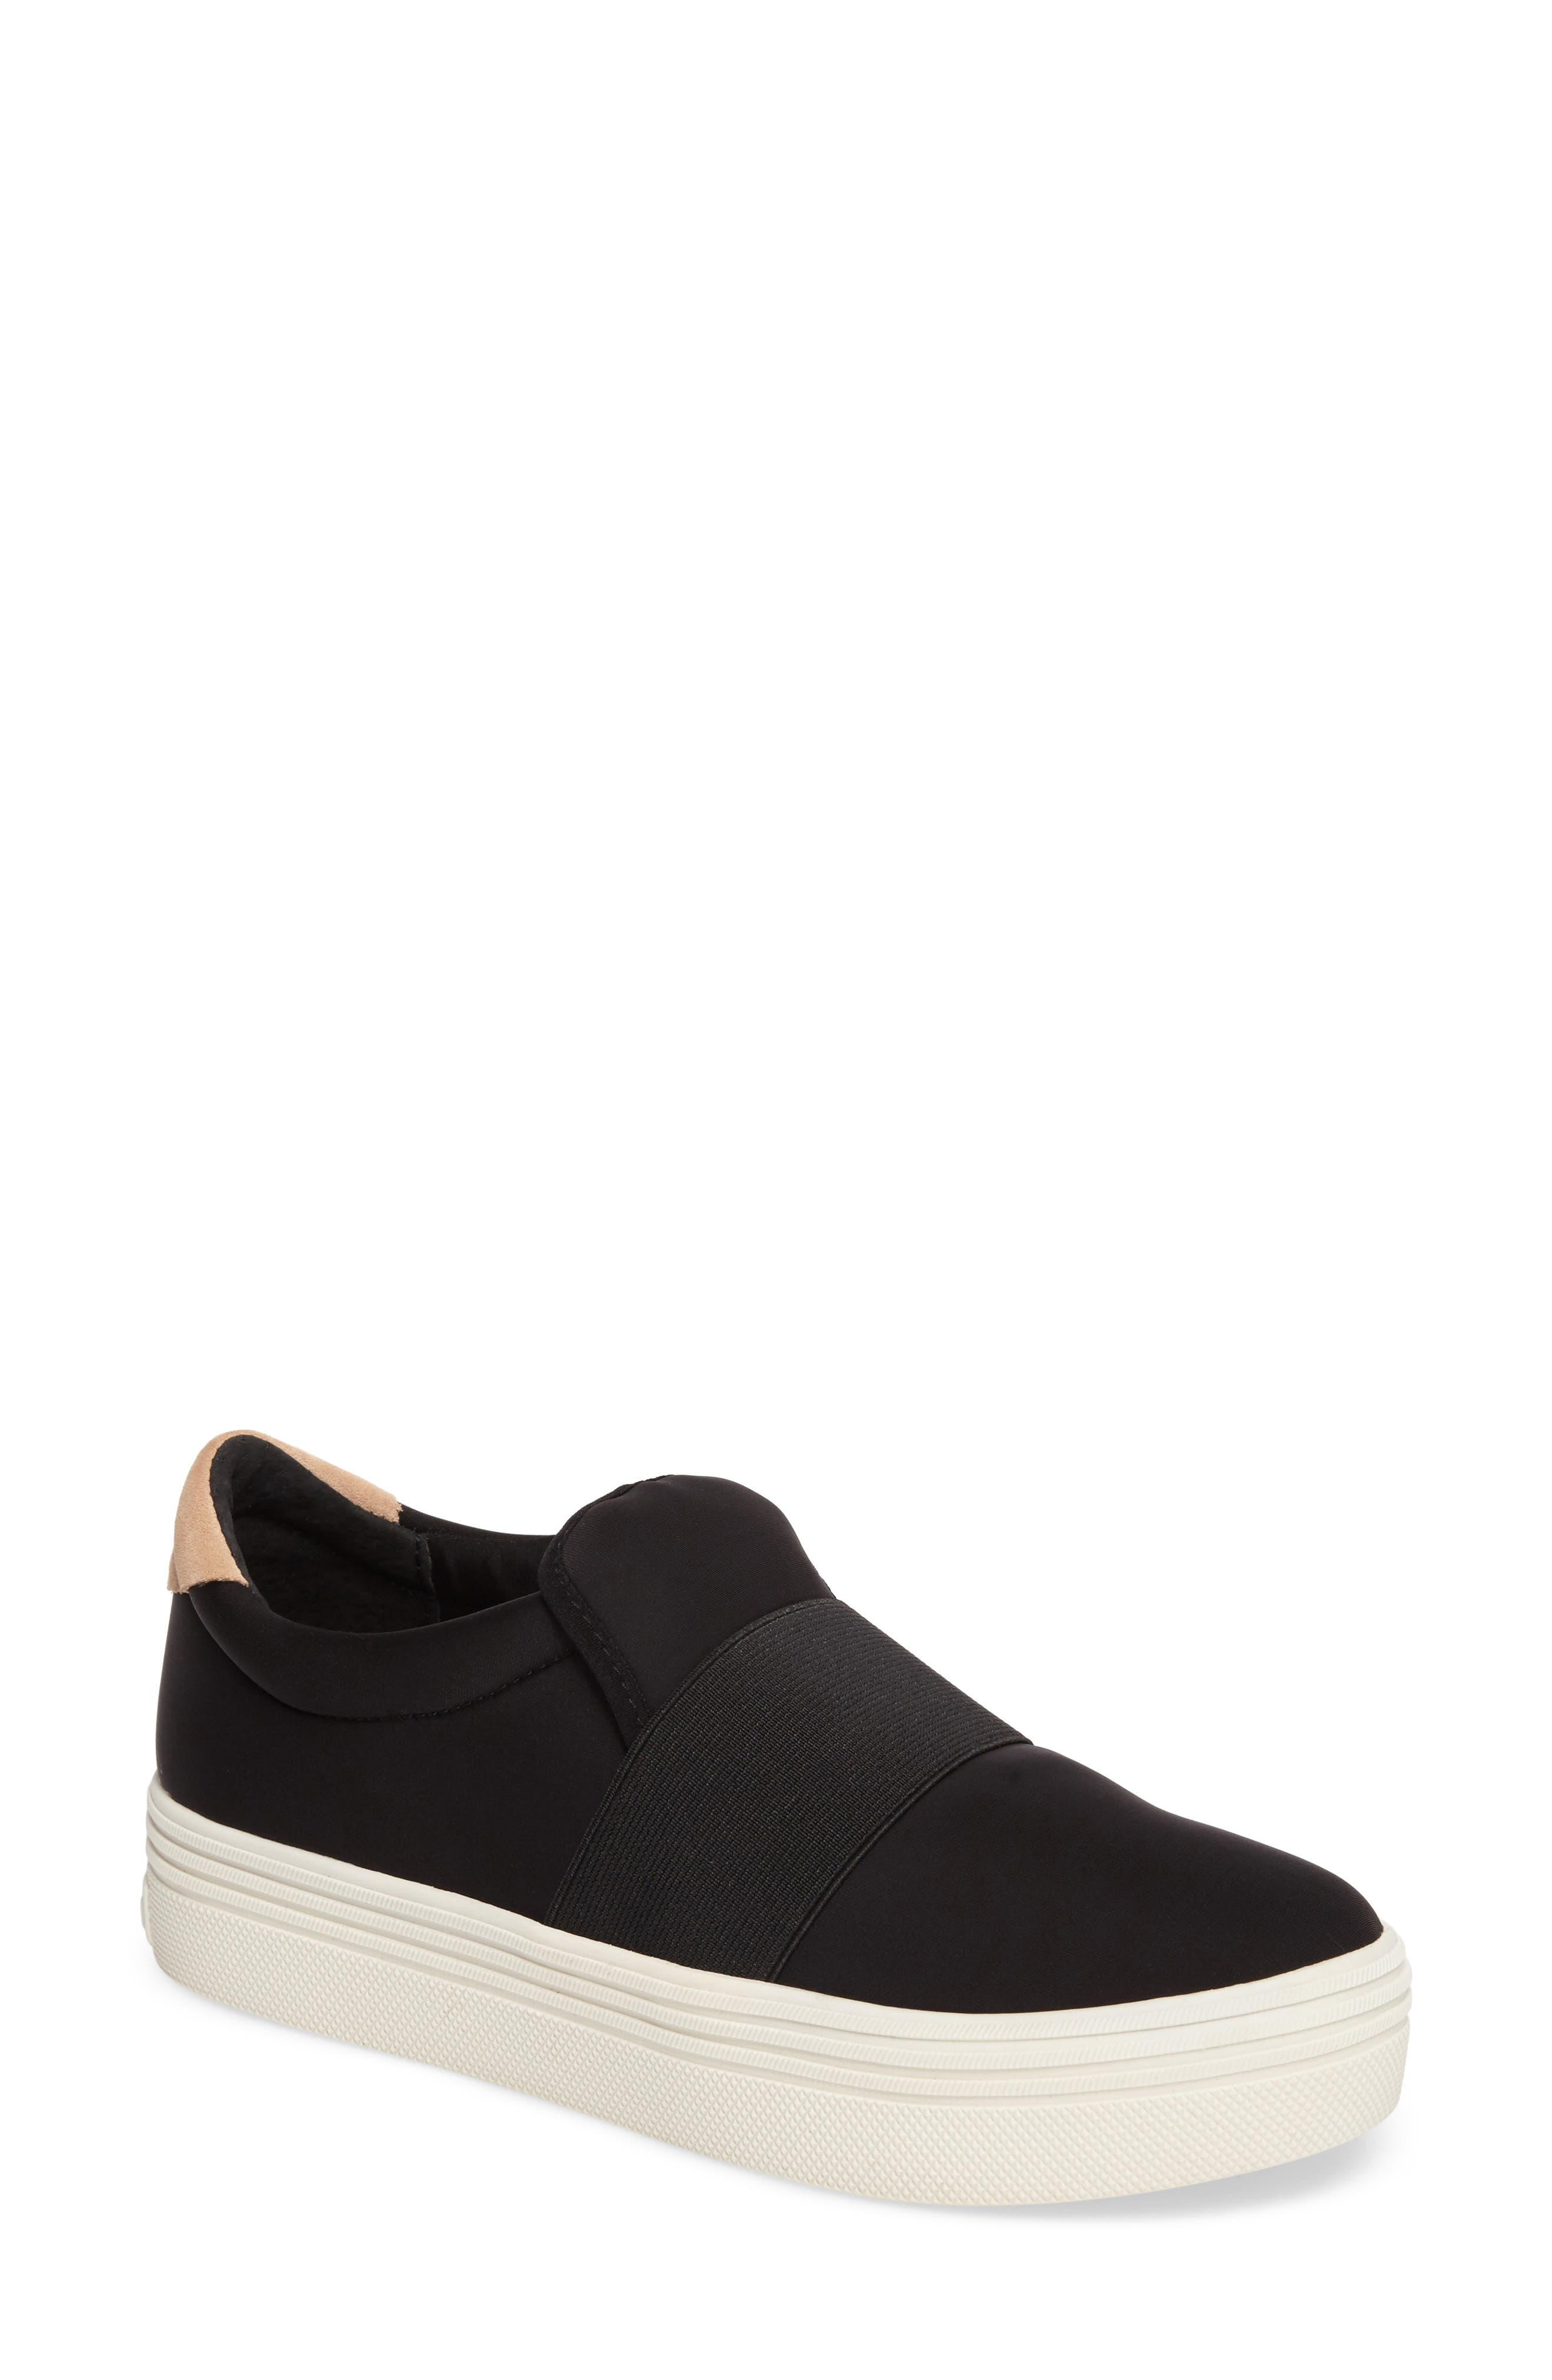 Dolce Vita Tux Slip-On Sneaker (Women)